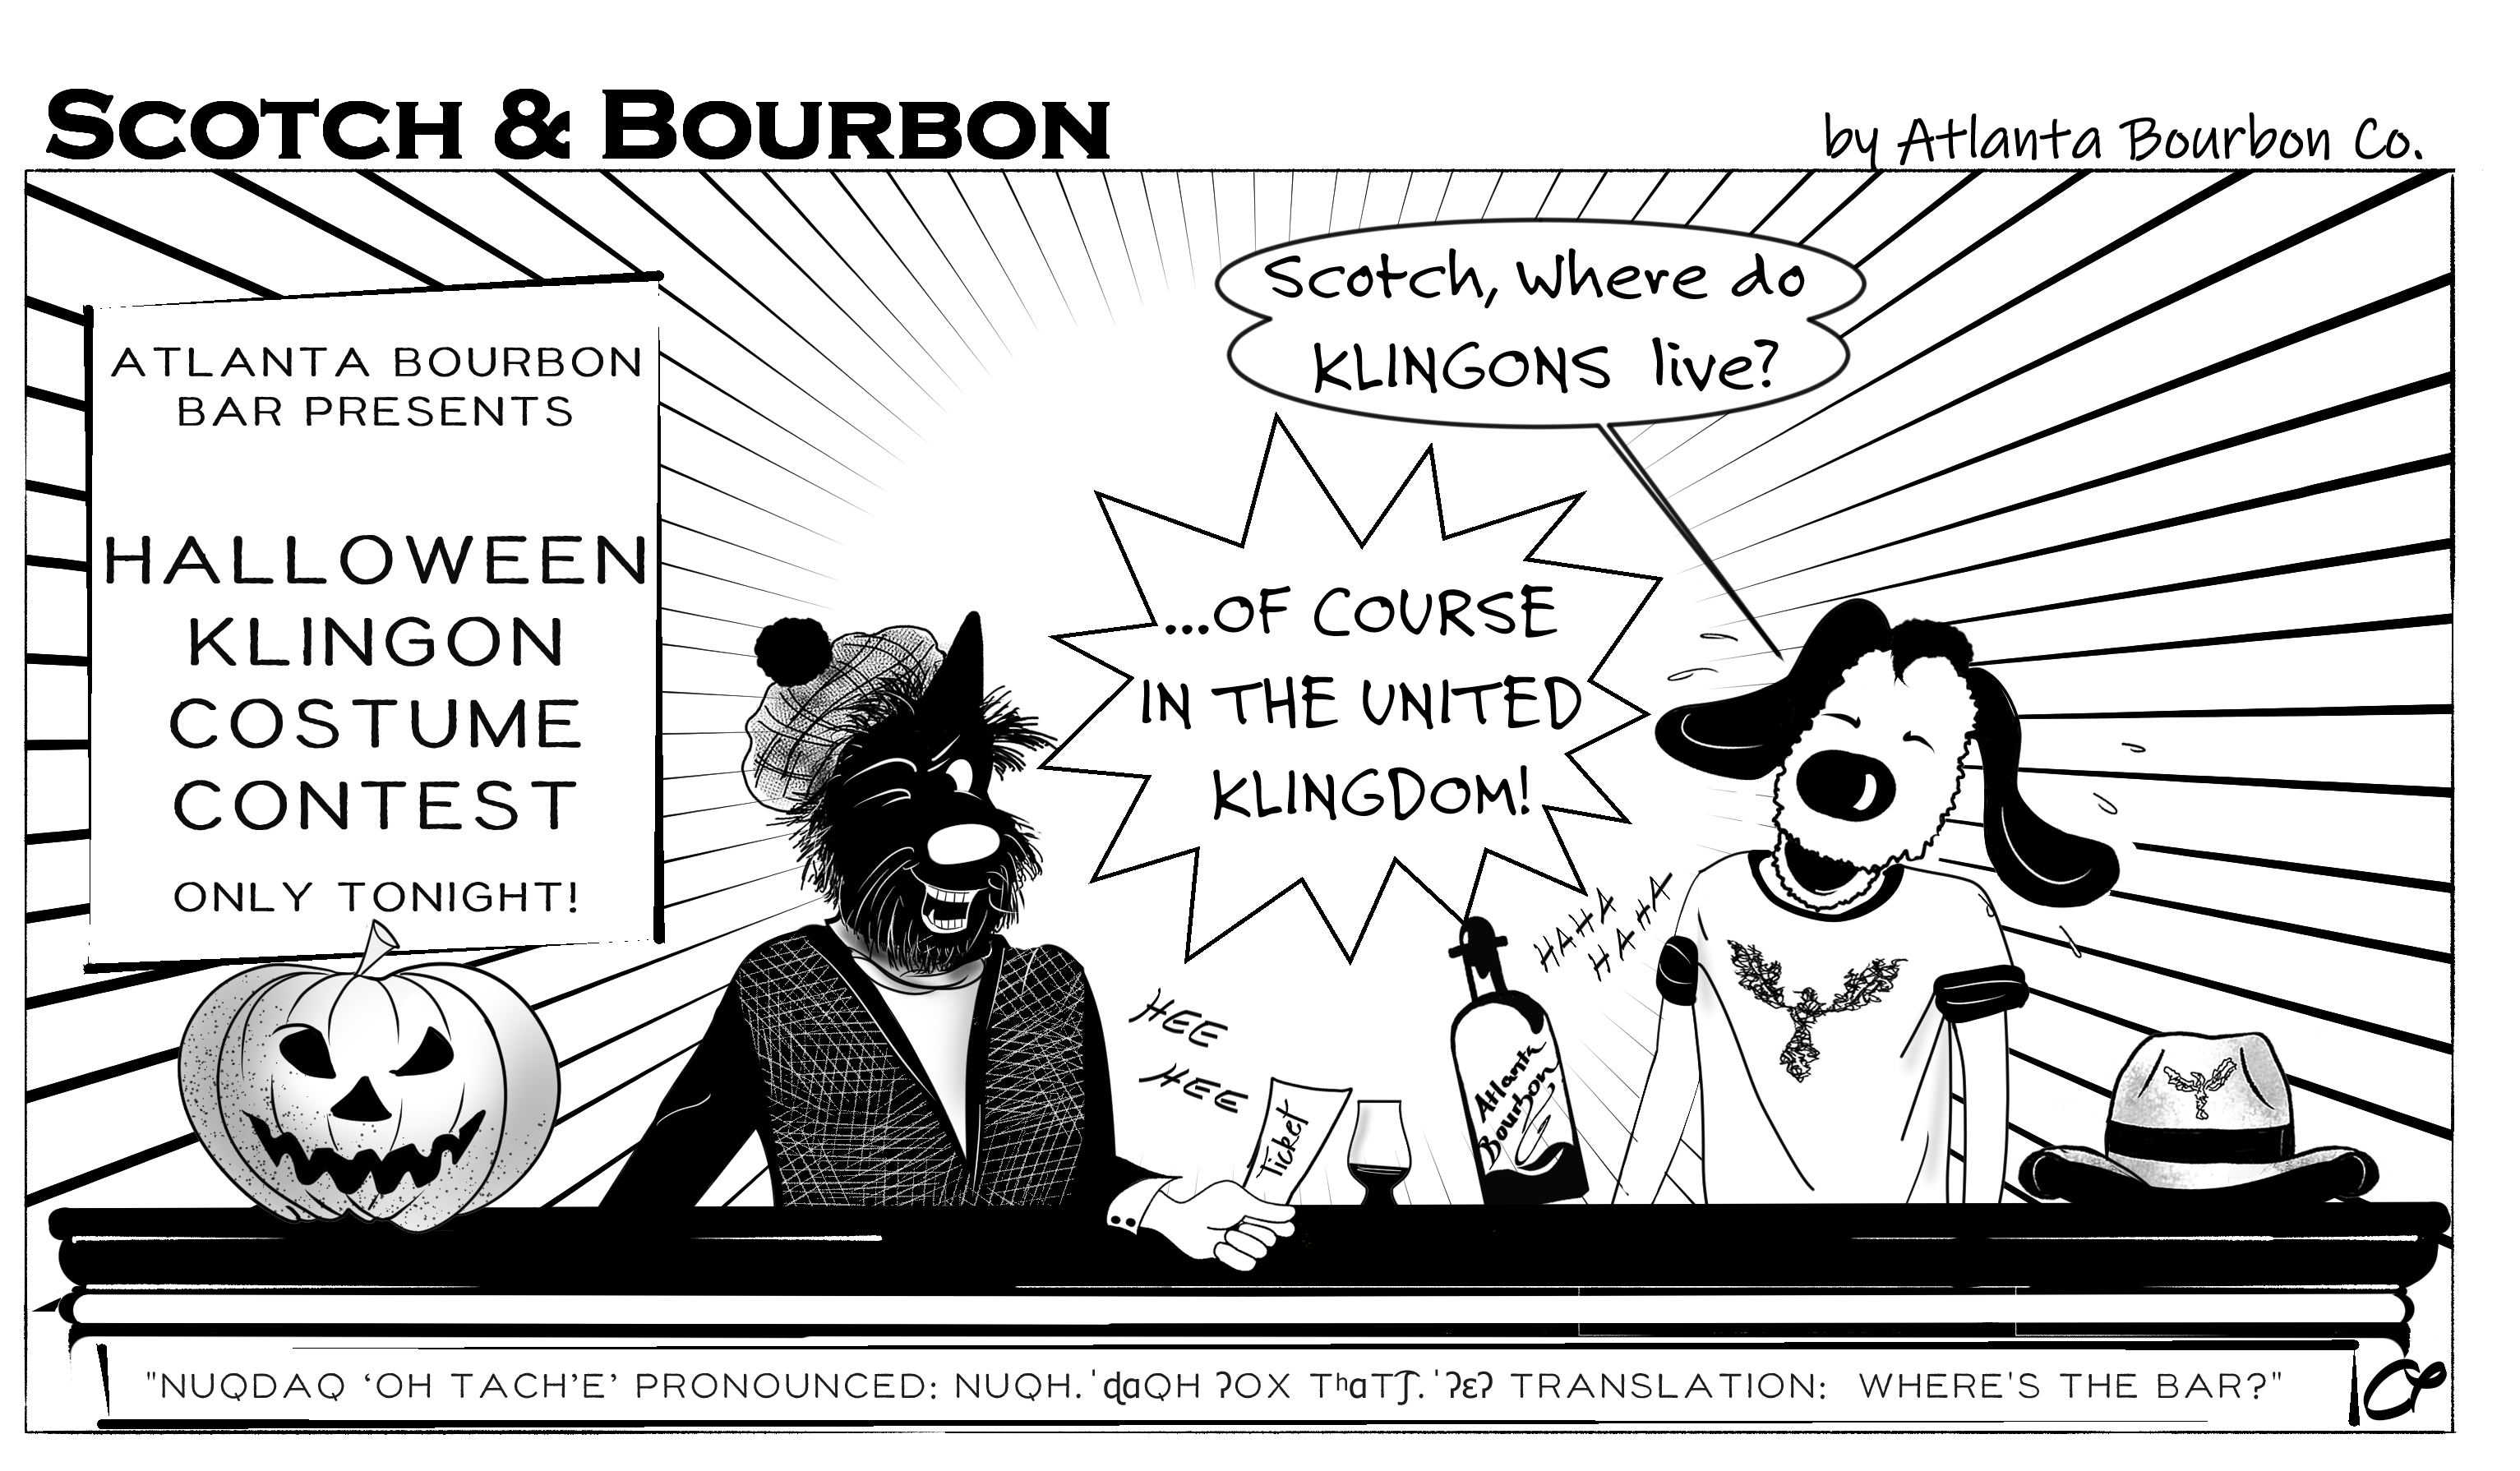 Scotch_Bourbon_Cartoon_UnitedKlingdom_Halloween